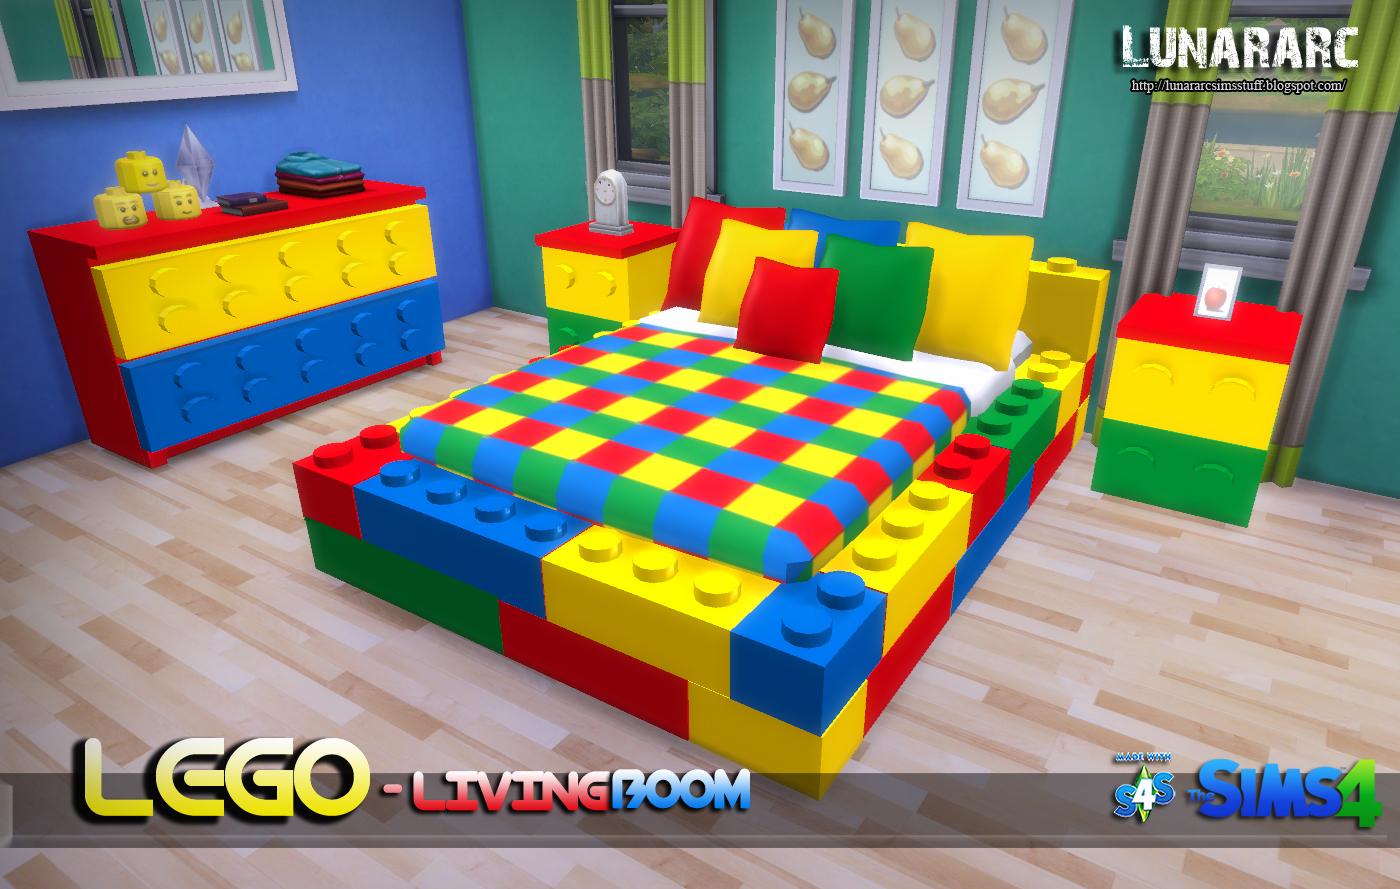 Lunararc Sims Lego Bedroom Set